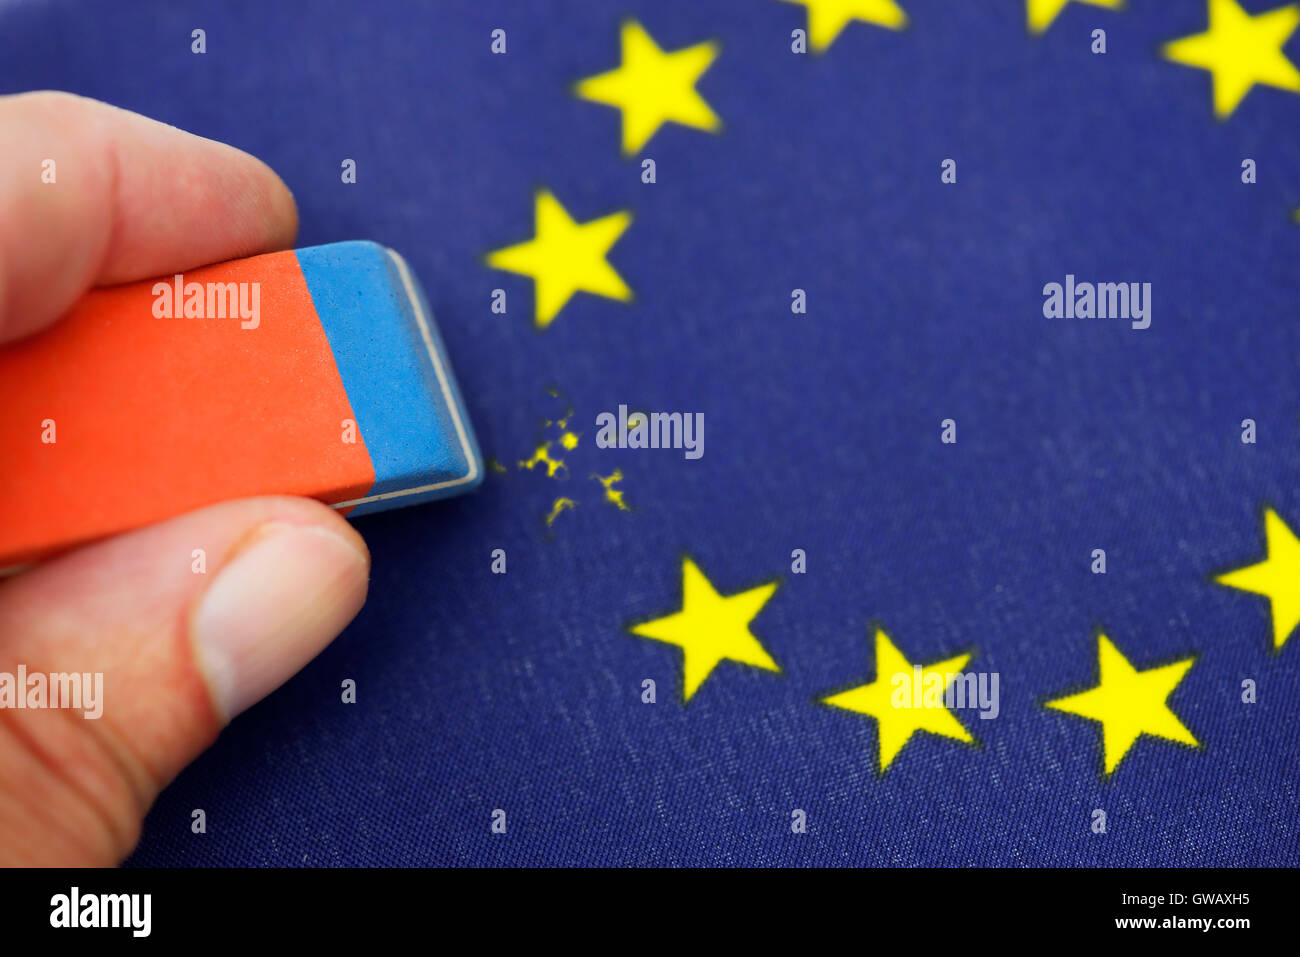 From EU flag star is erased out, symbolic photo Brexit, Aus EU-Fahne wird Stern ausradiert, Symbolfoto Brexit - Stock Image